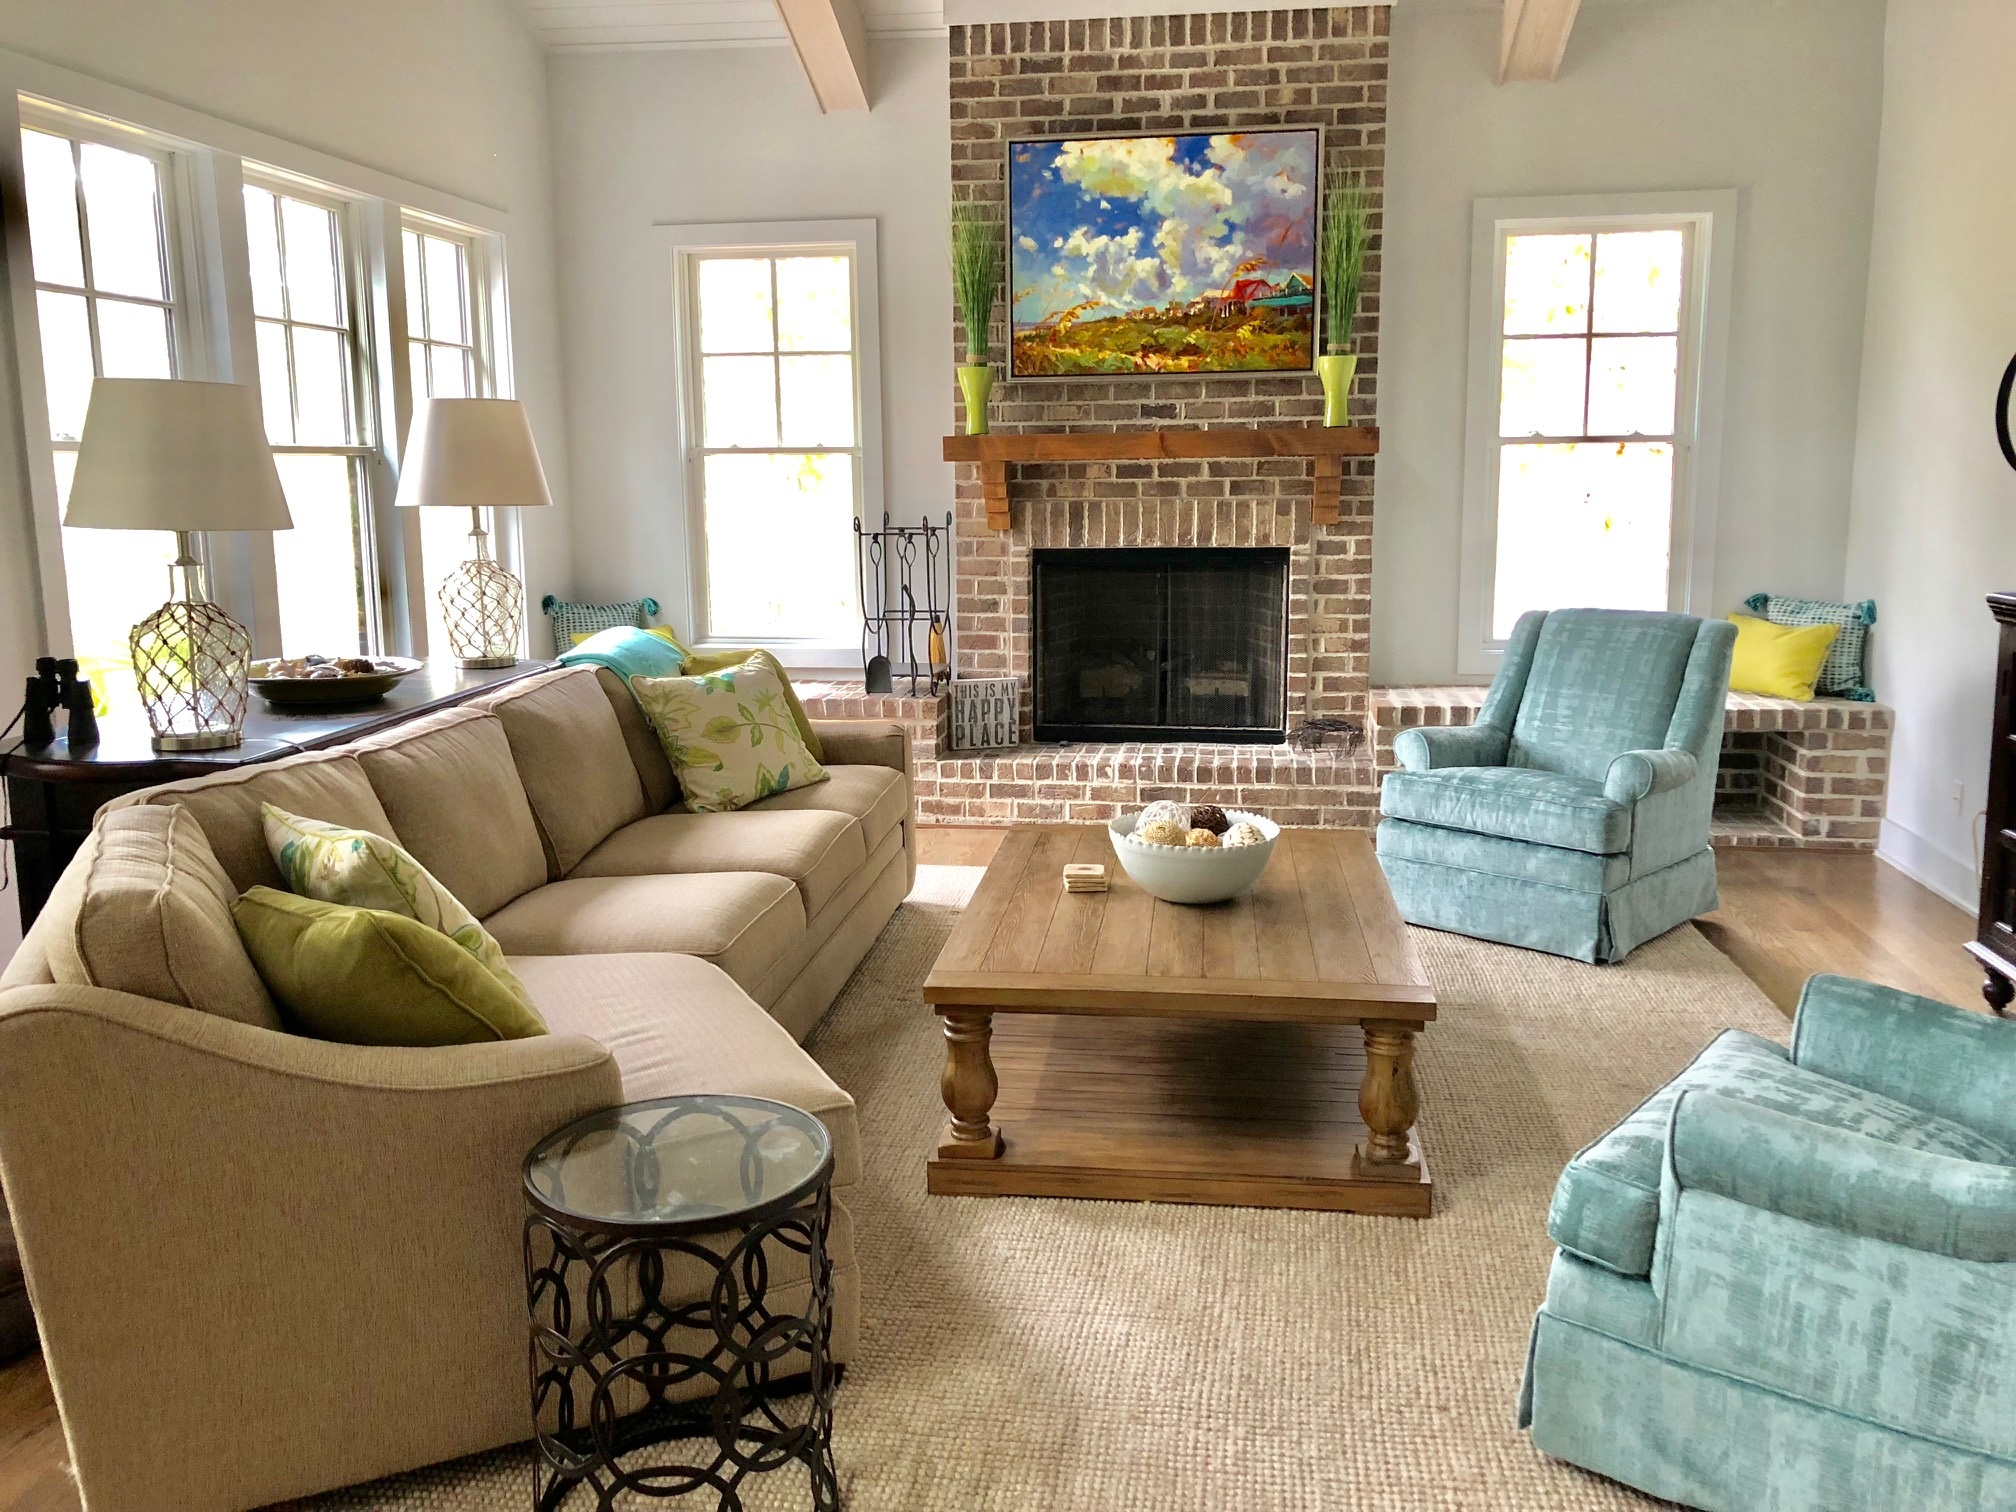 Inviting gathering spaces